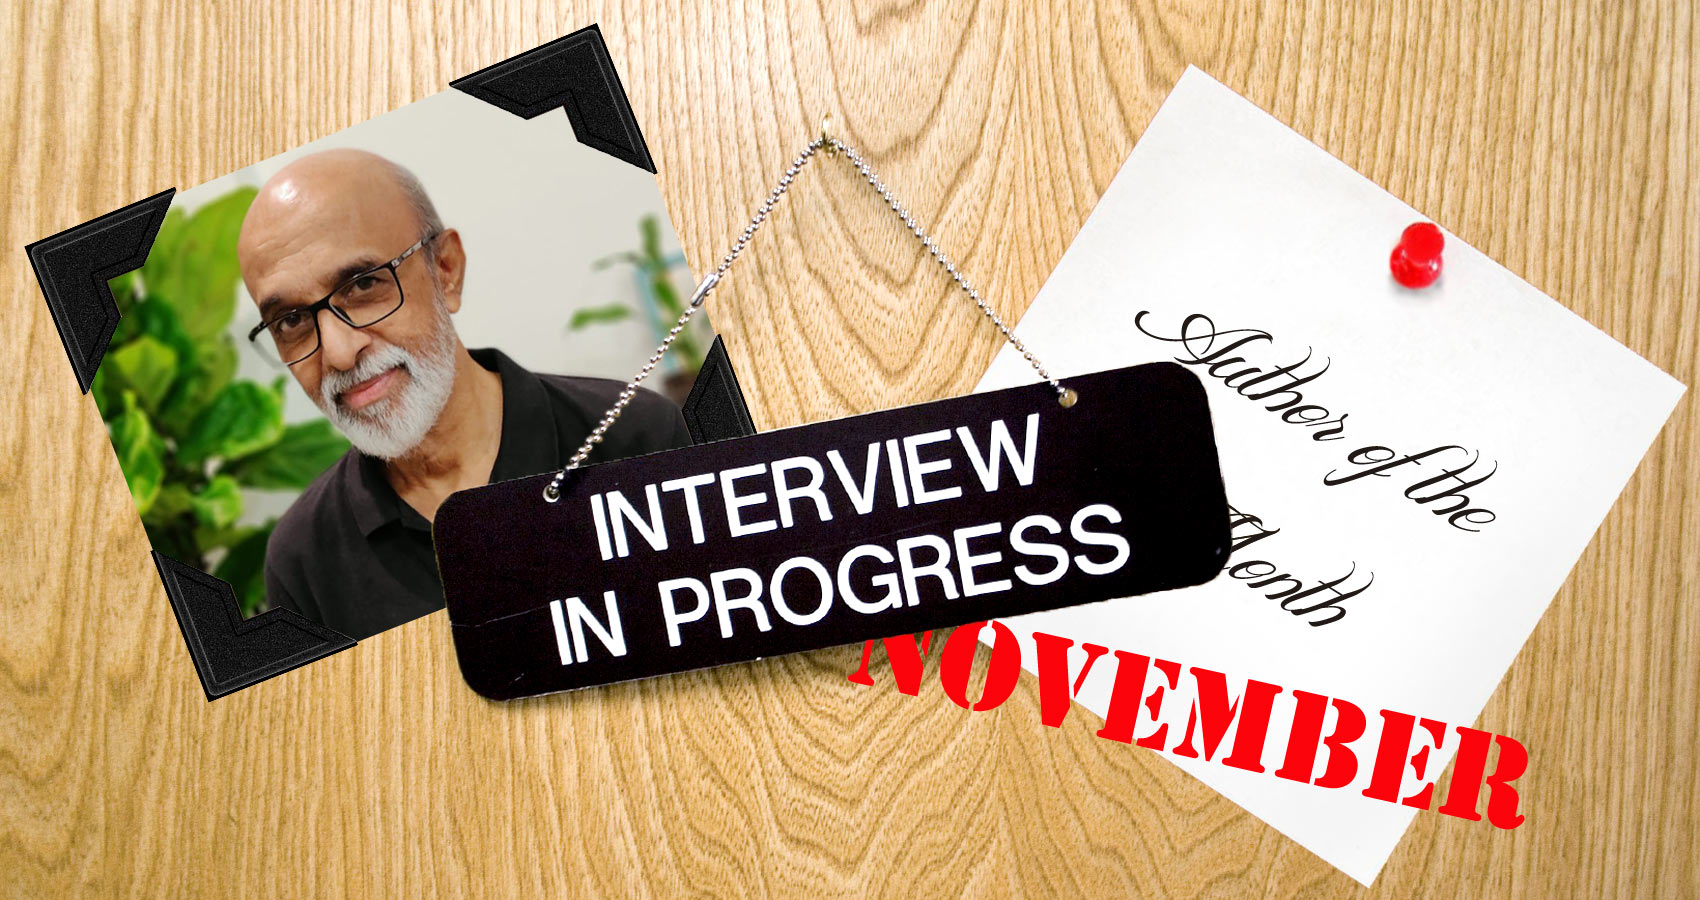 Interview Q&A with GS. Subbu, a writer at Spillwords.com